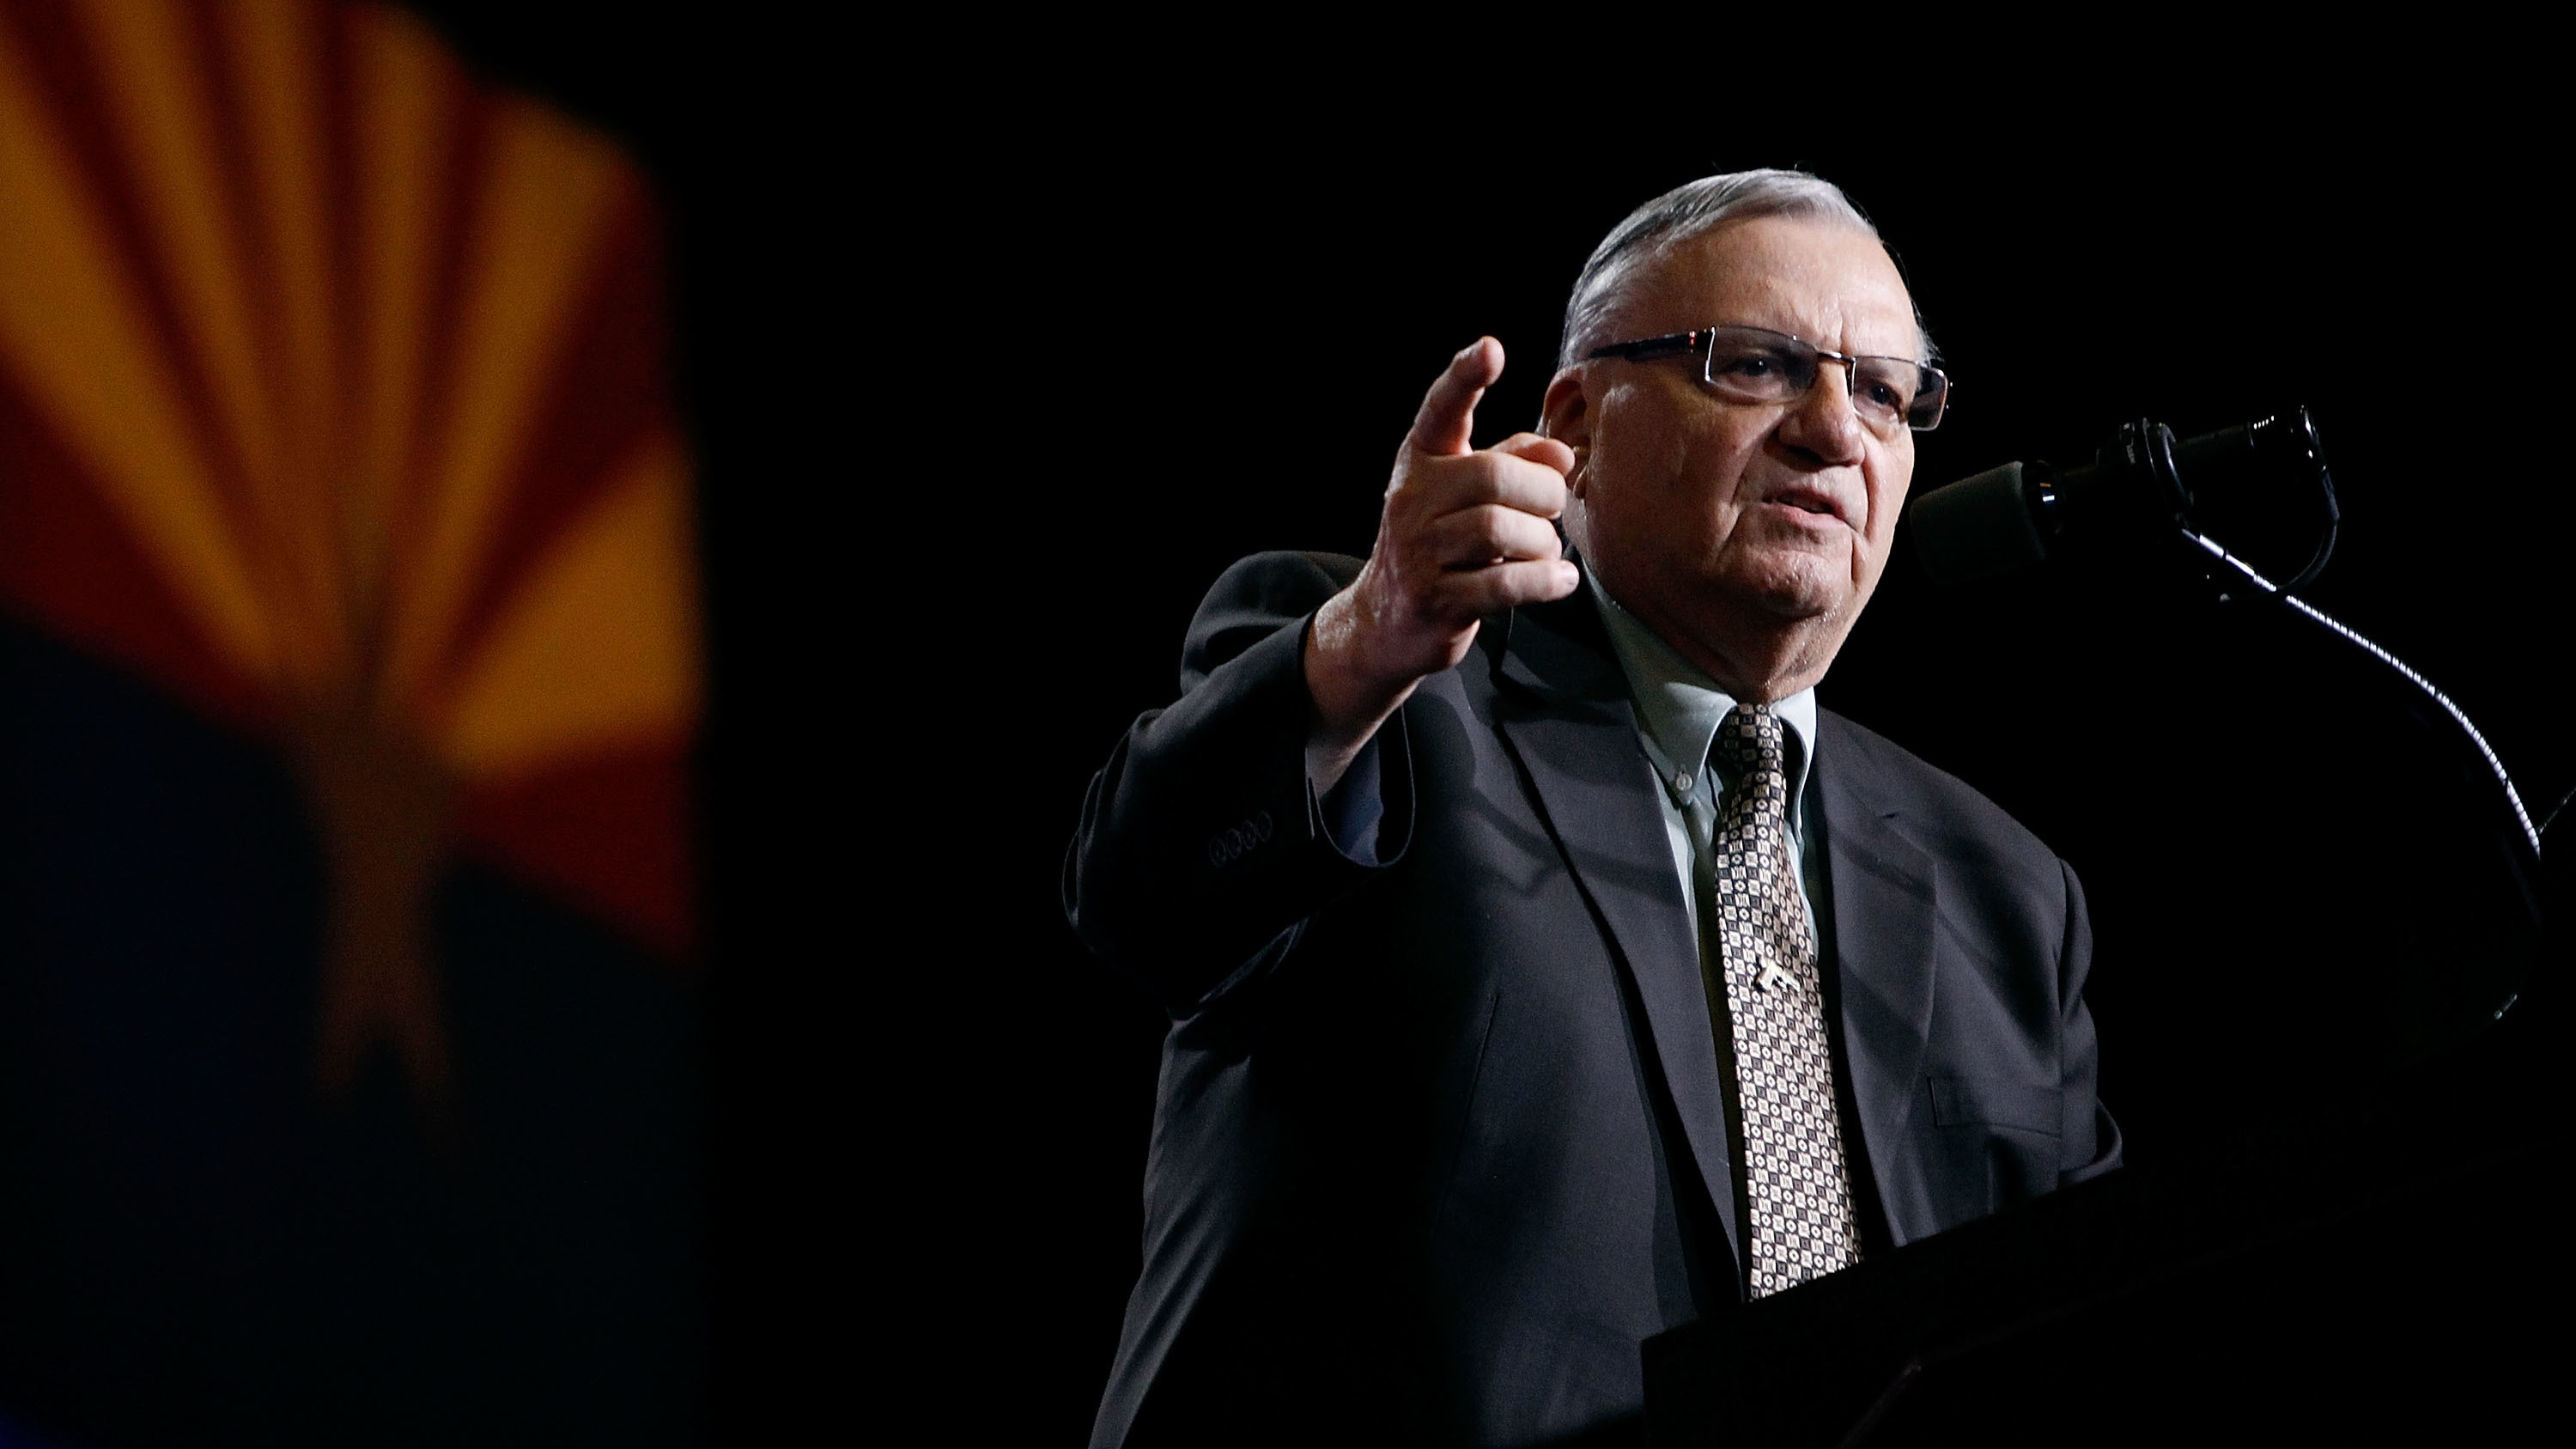 Joe Arpaio Still Insisting Obama's Birth Certificate Fake, Claims He Has Proof